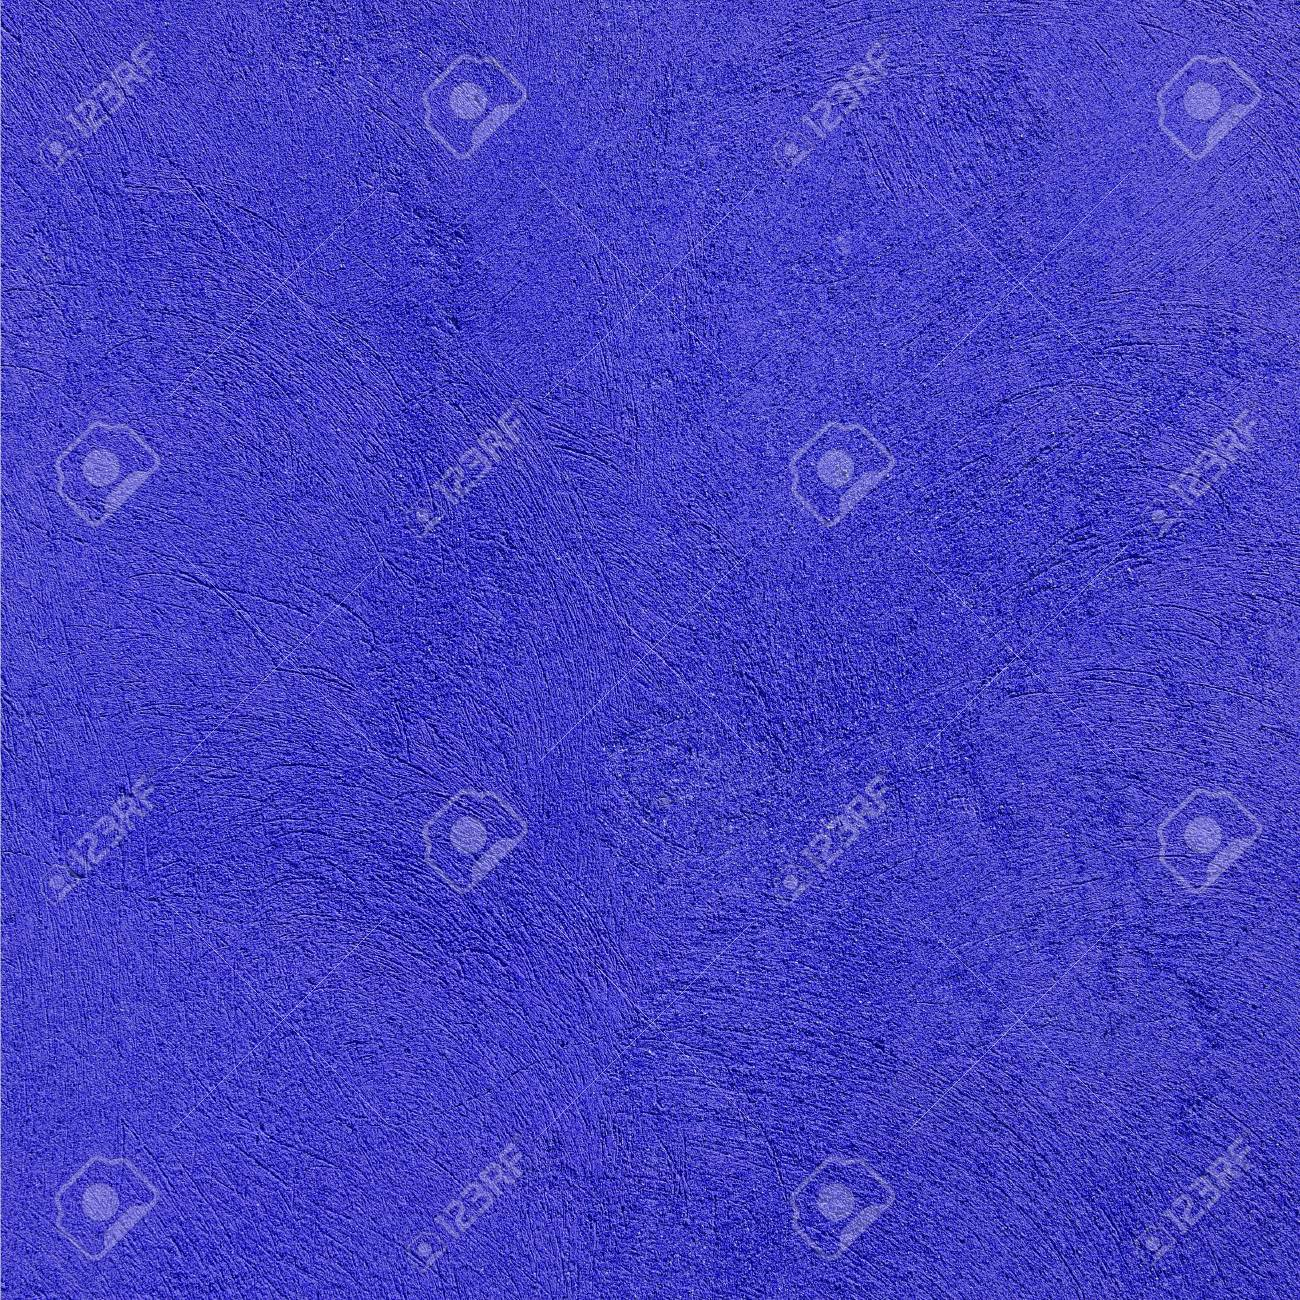 Blue wall background or texture Stock Photo - 15903258